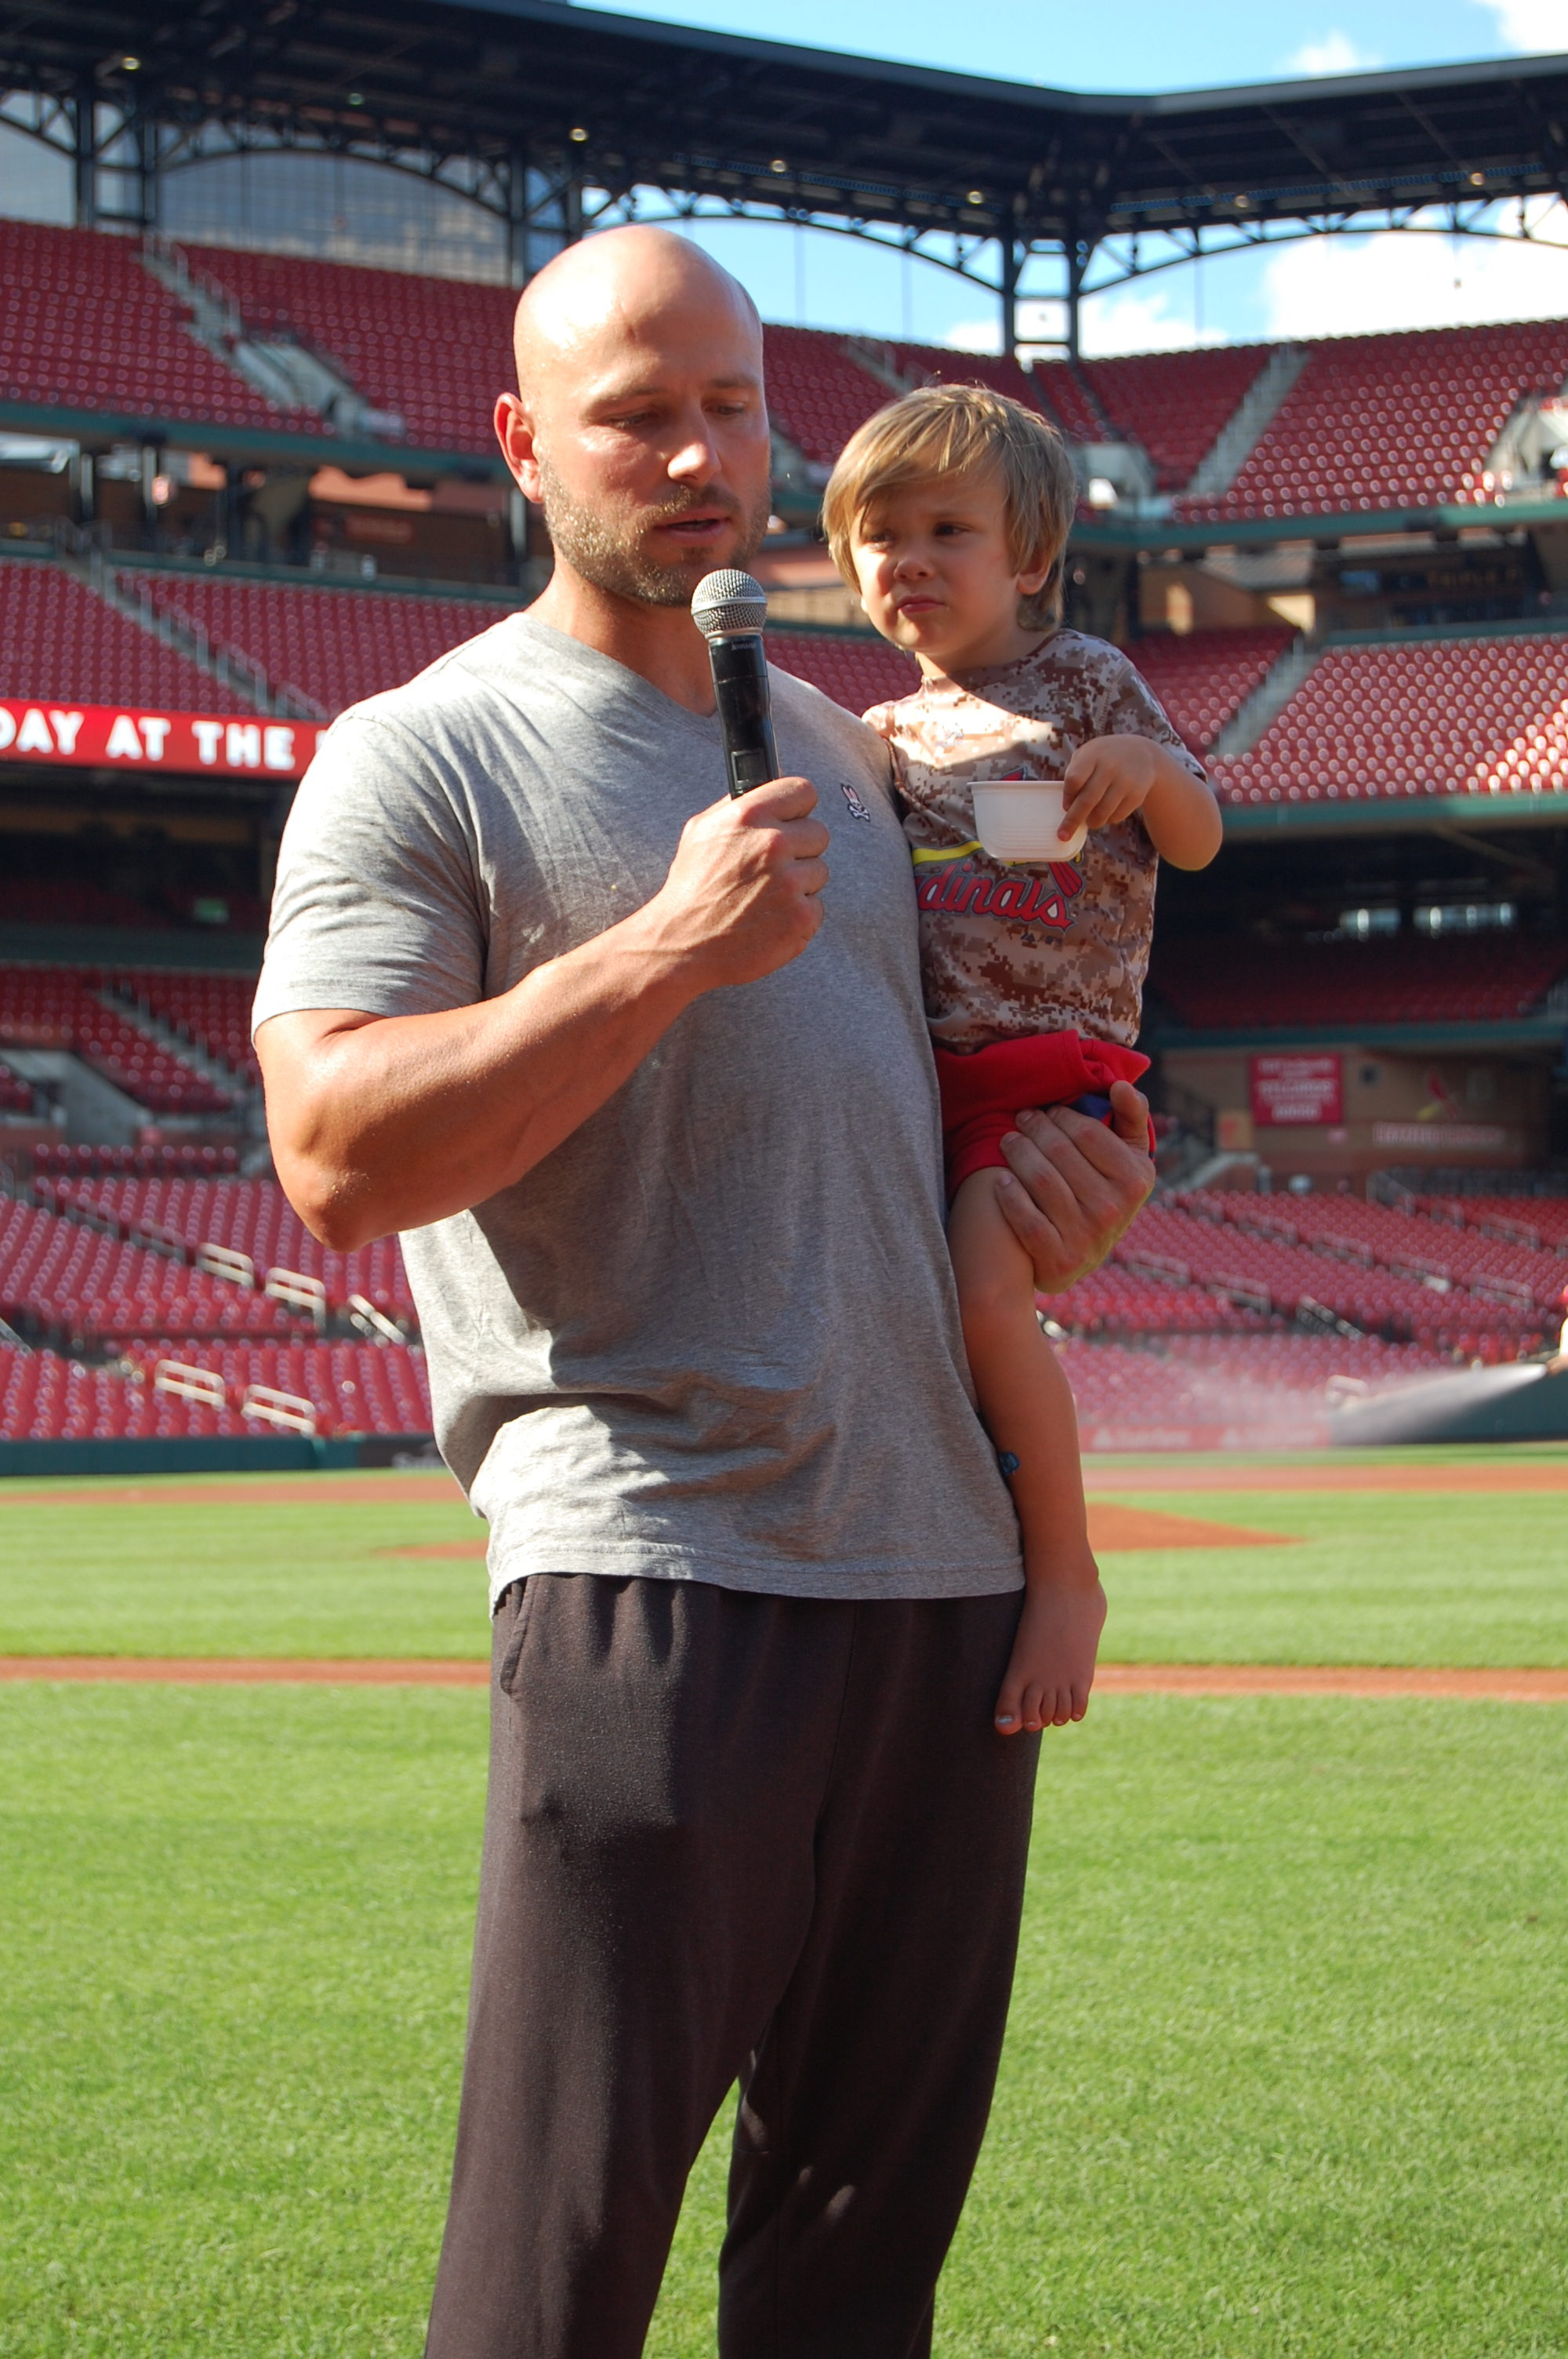 Matt Holliday and his little one. Sharing his testimony.